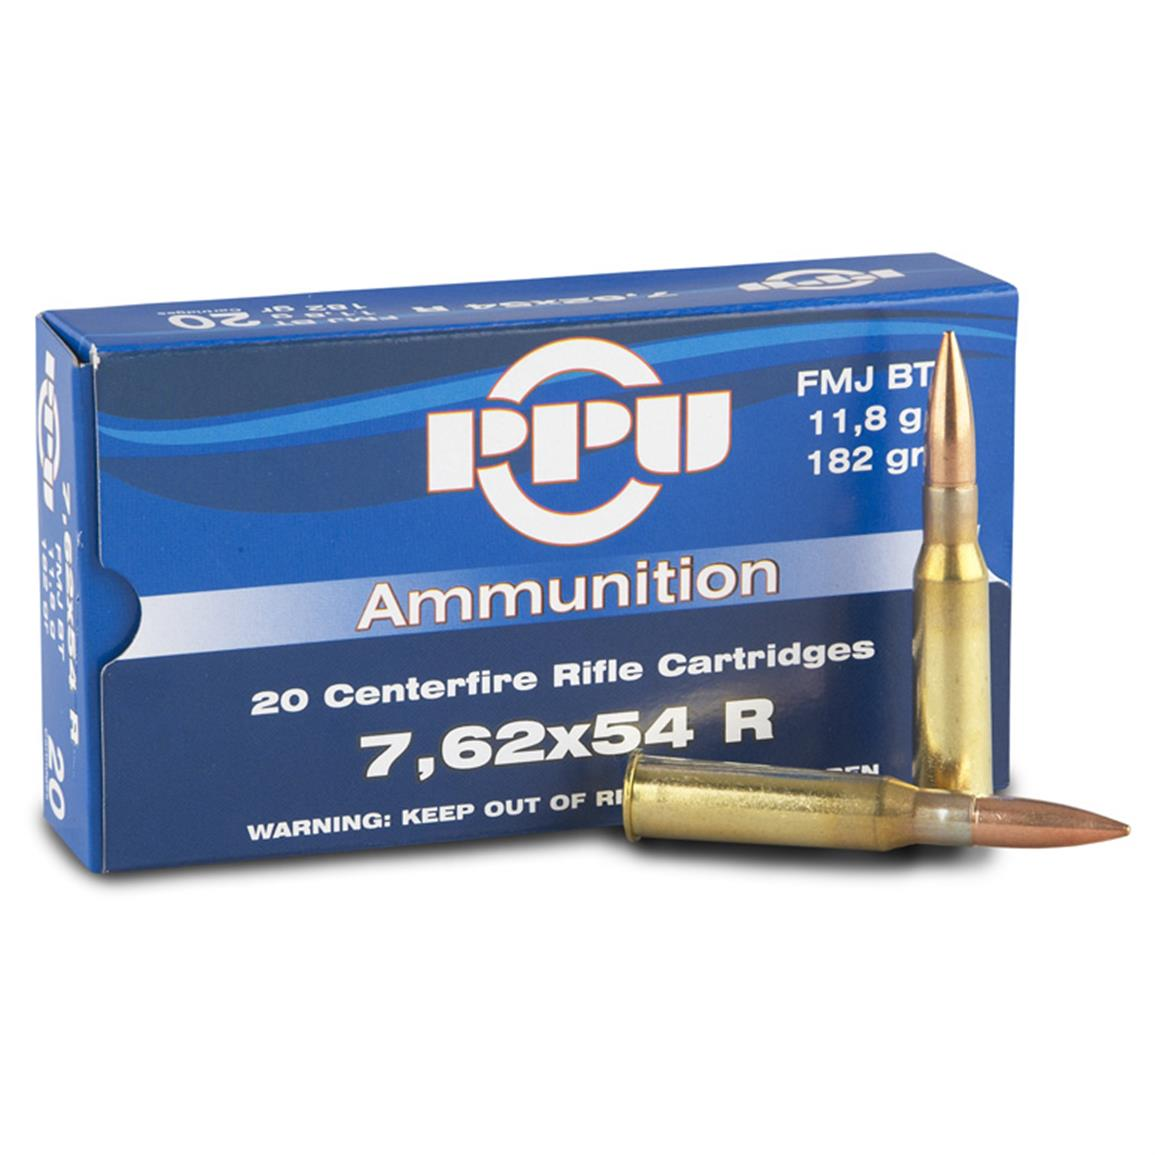 PPU, 7.62x54R, FMJ-BT, 182 Grain, 20 Rounds